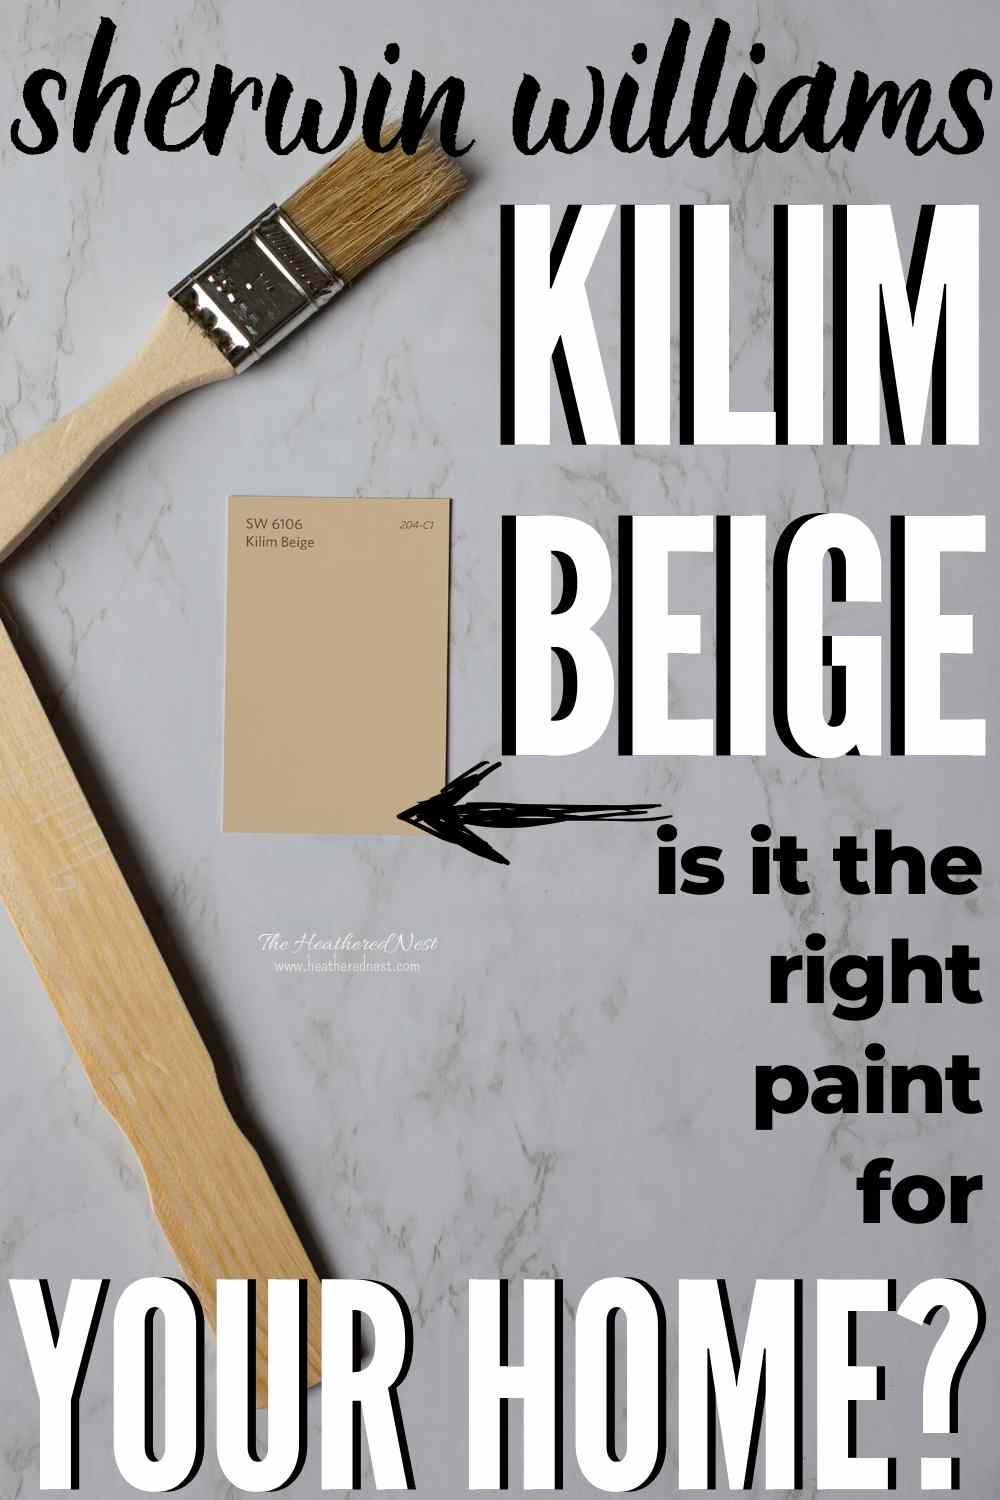 Kilim Beige paint swatch on a marble background